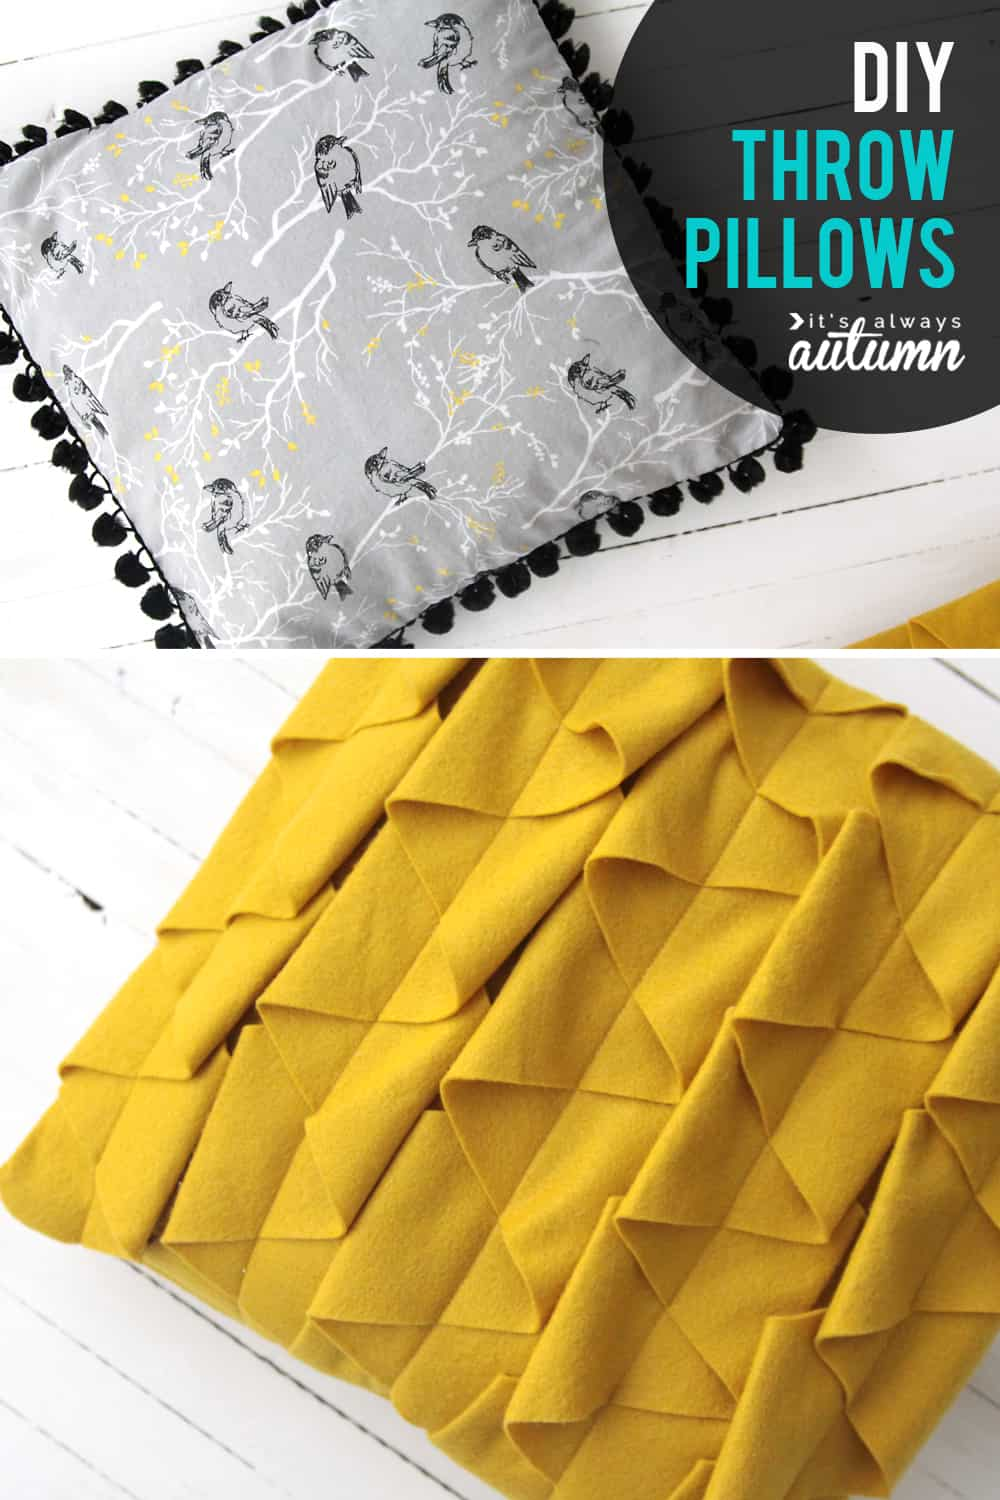 IY throw pillows and ruffles